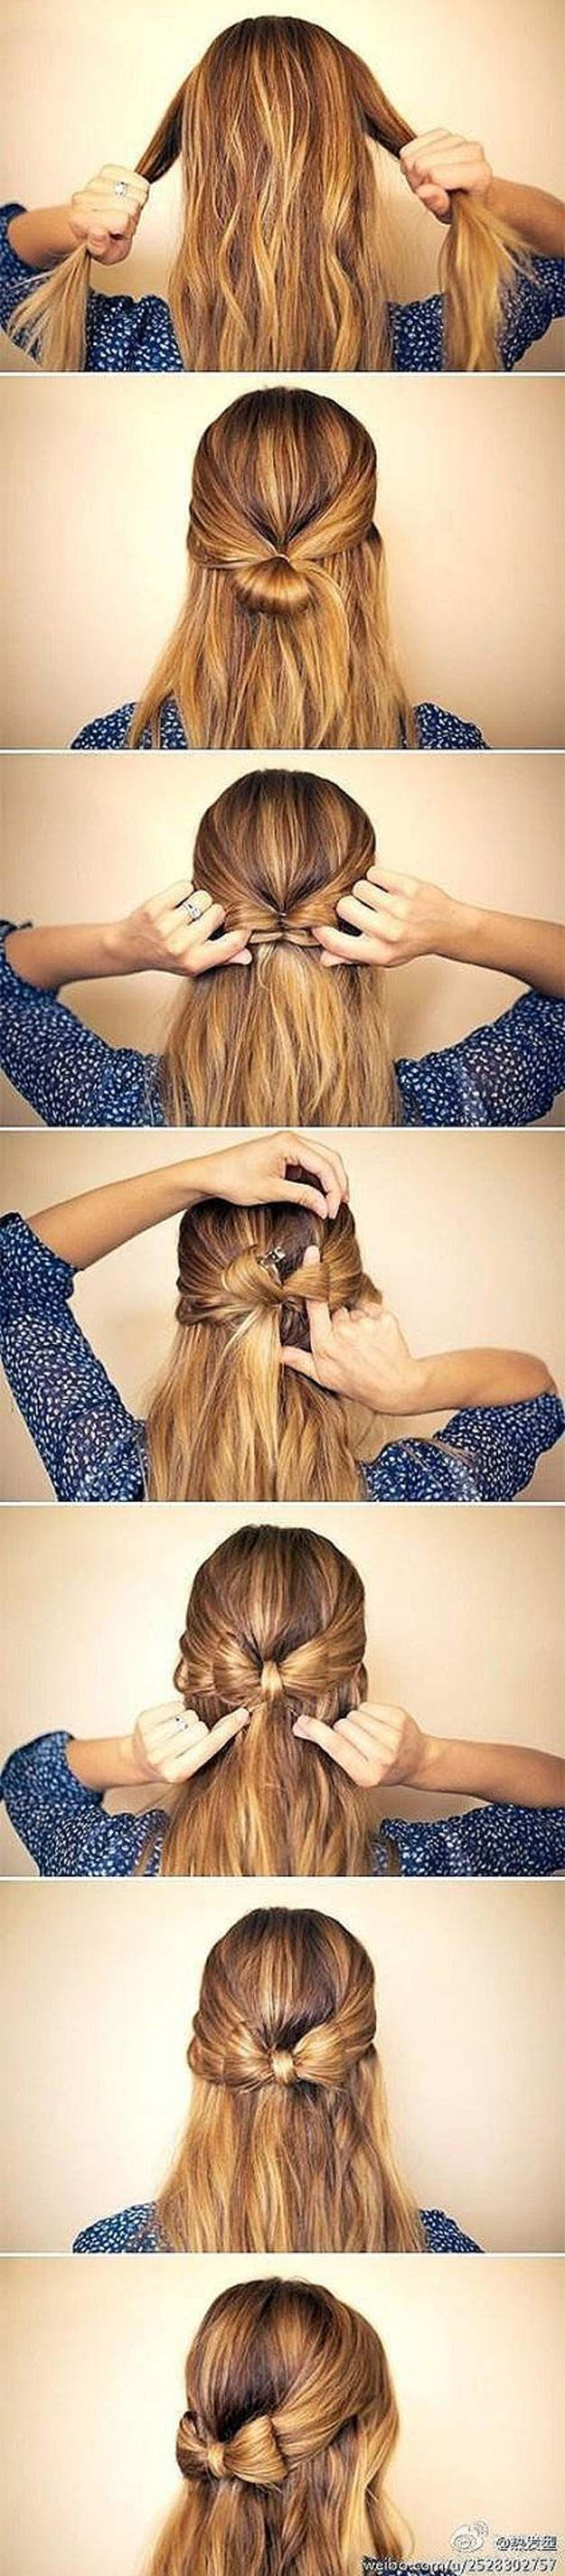 Best Hairstyles for Long Hair - Half Up Ribbon Hairstyle - Step by Step Tutorial...